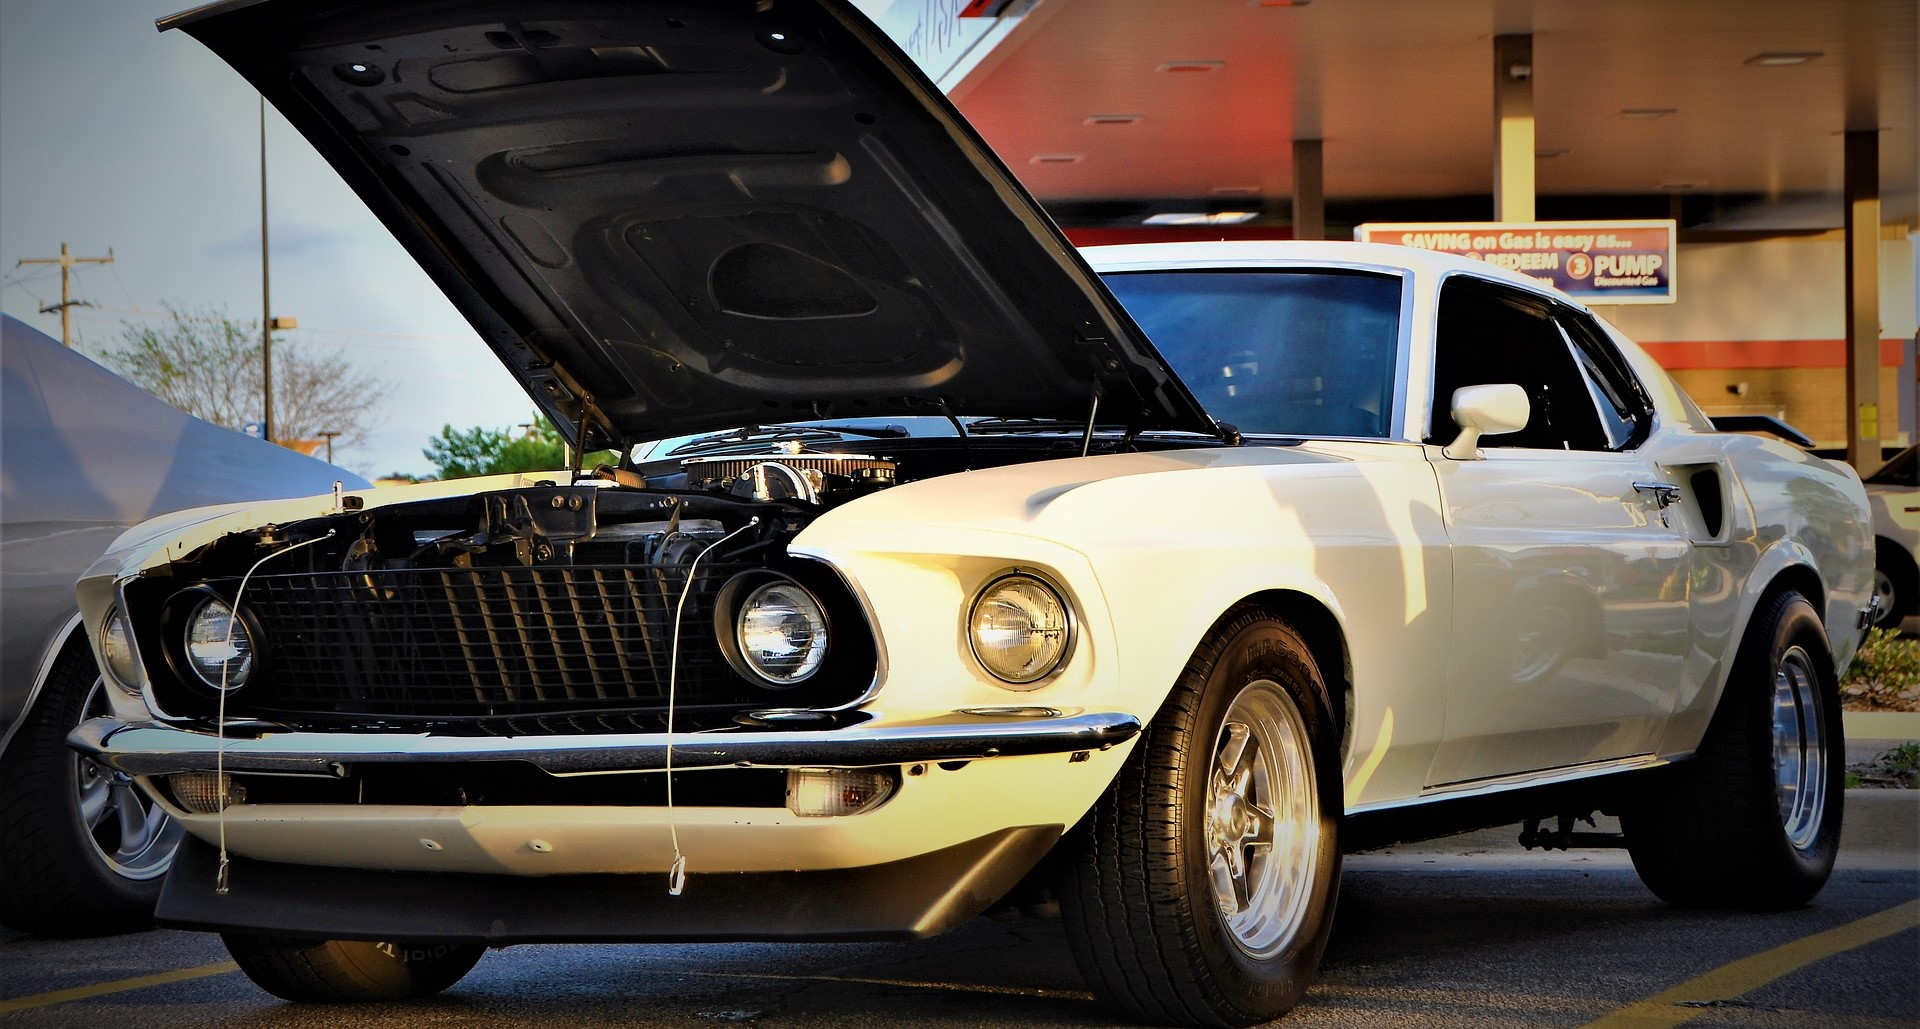 Muscle Car The Woodlands Texas